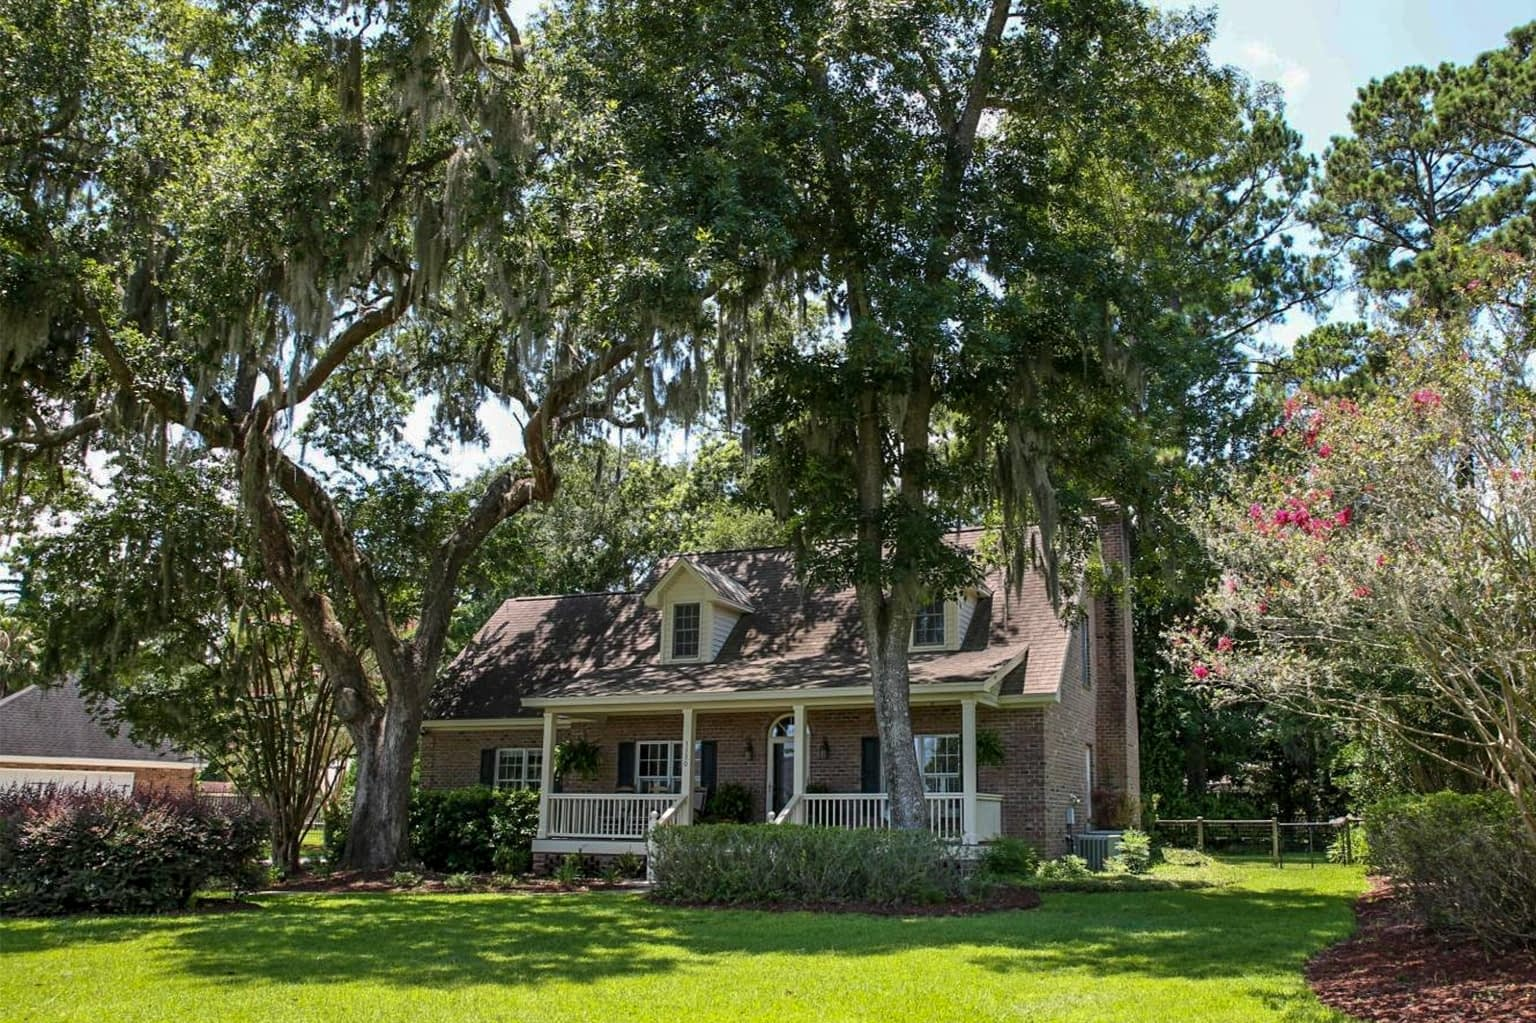 Real Estate Beaufort, SC | Dobyns Realty | 1130 Otter Circle